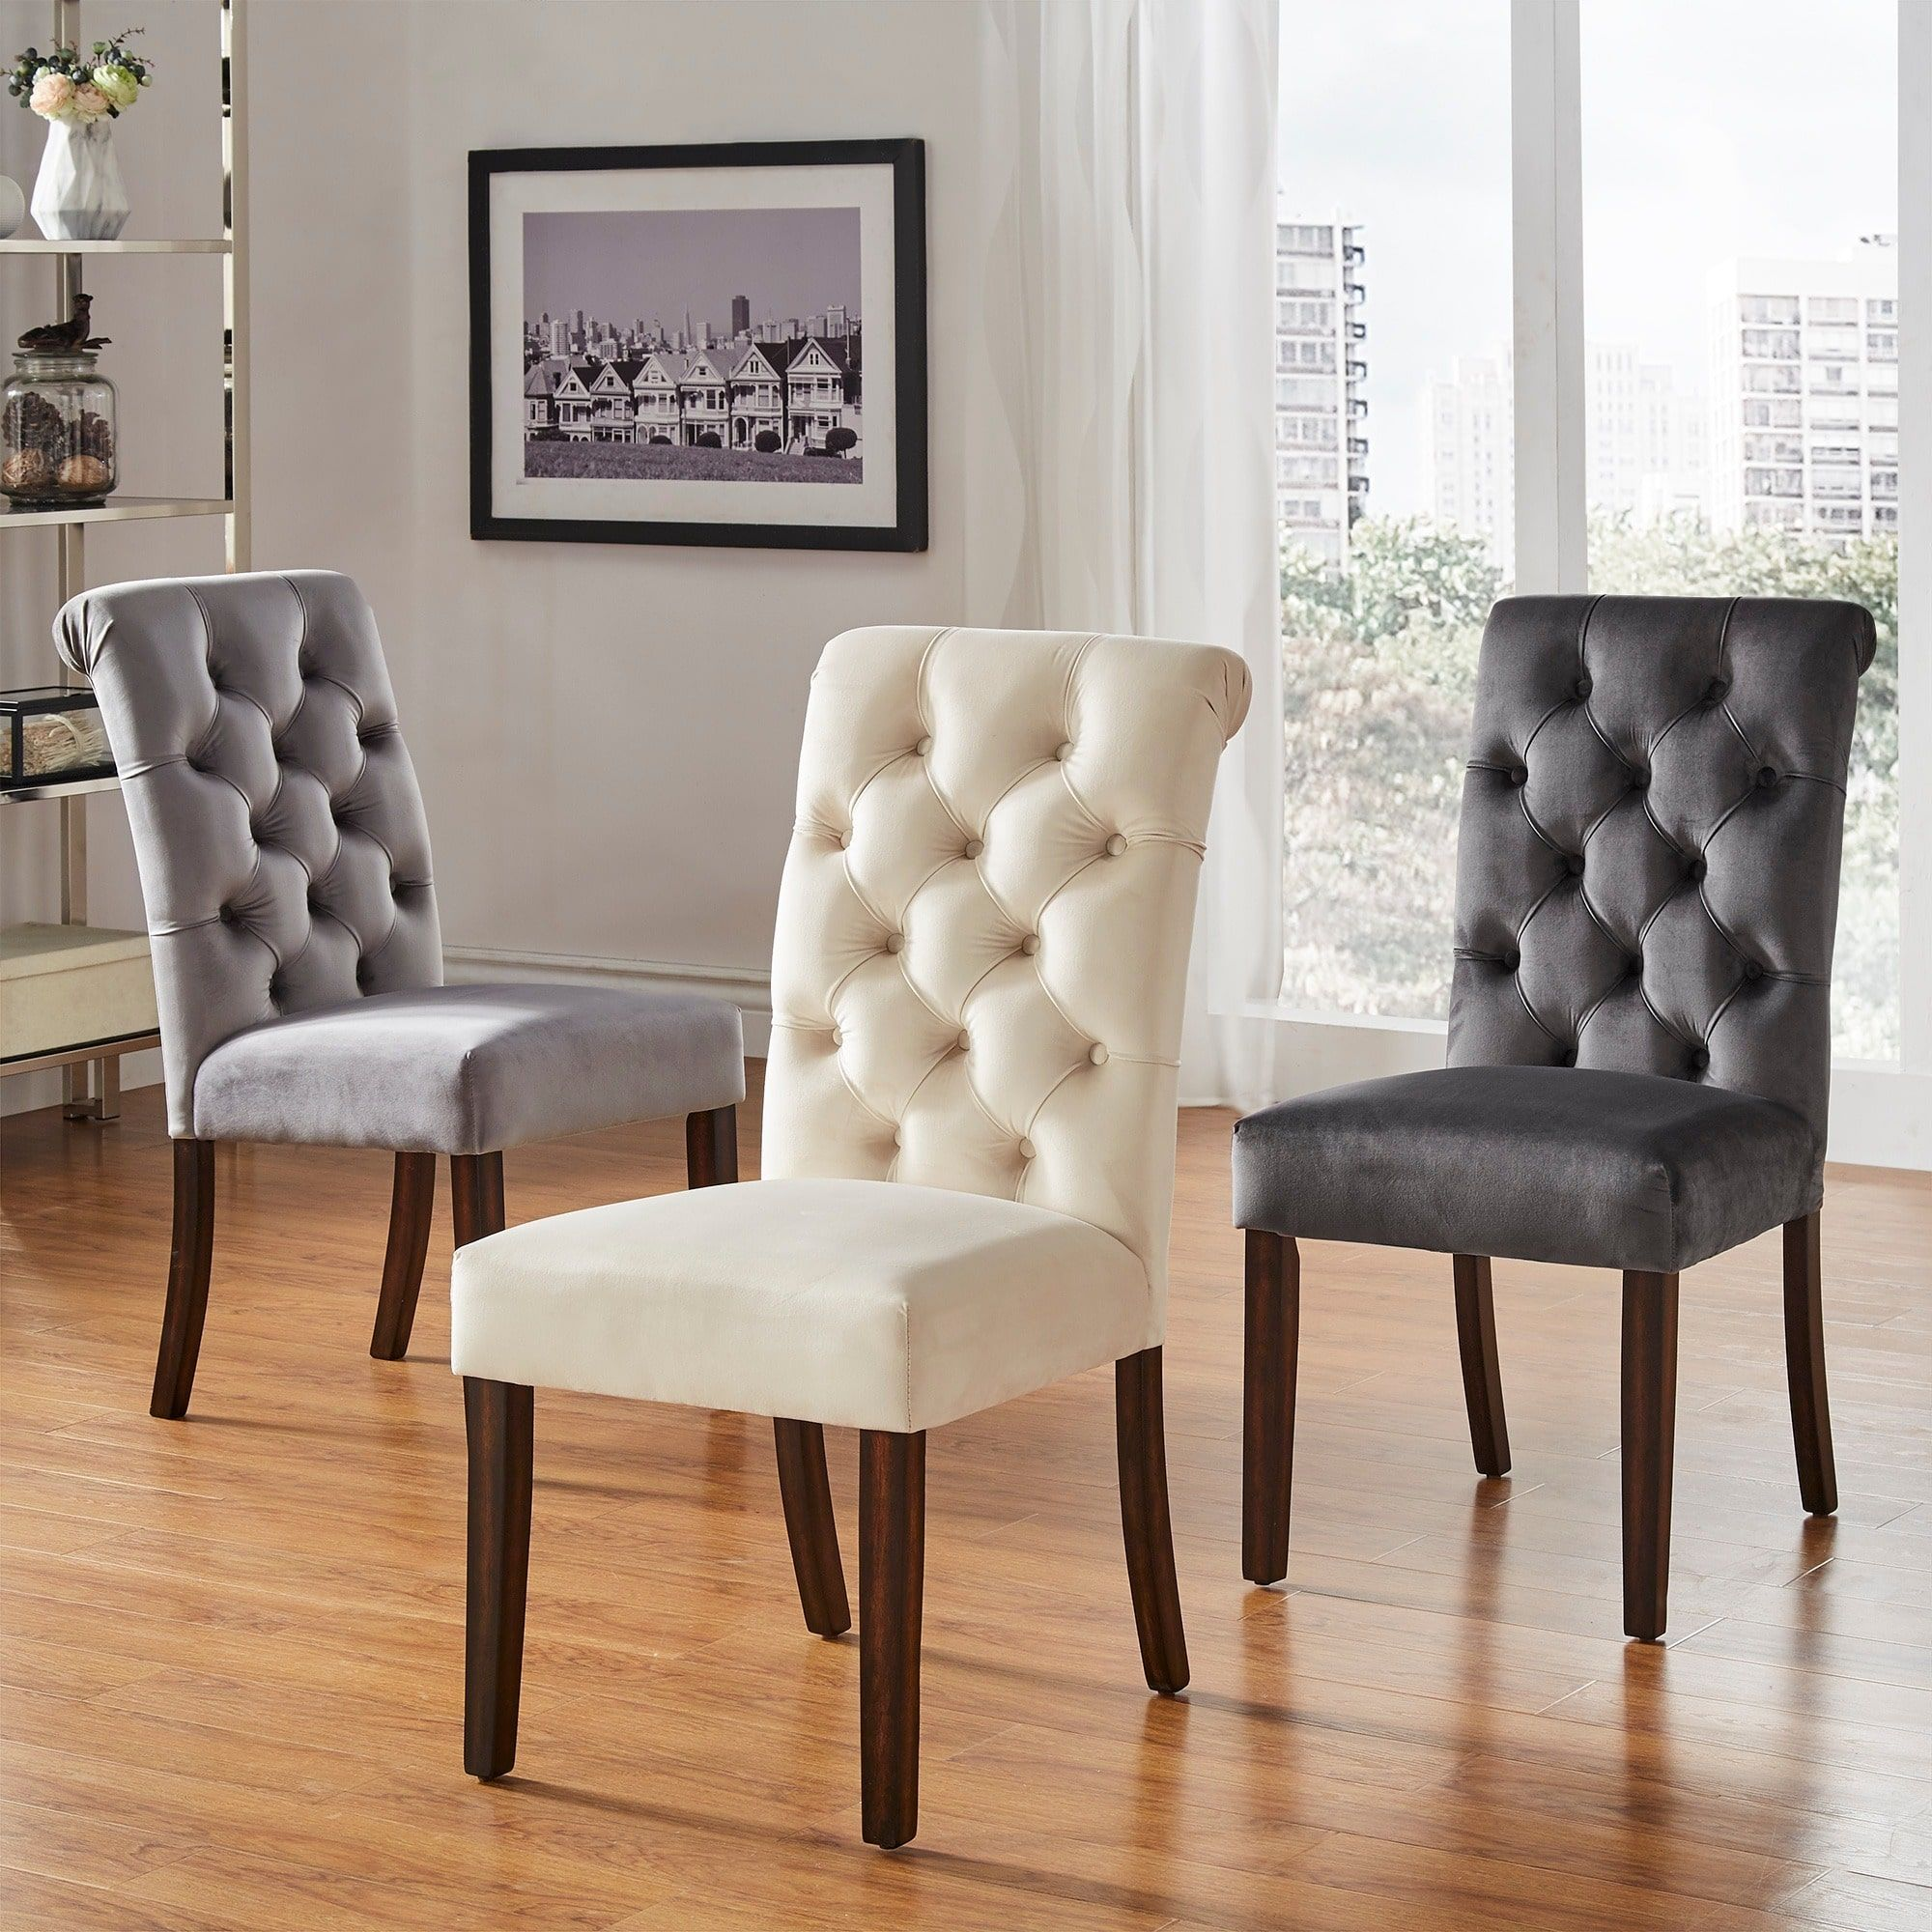 Benchwright Velvet Tufted Rolled Back Parsons Chairs by Inspire Q